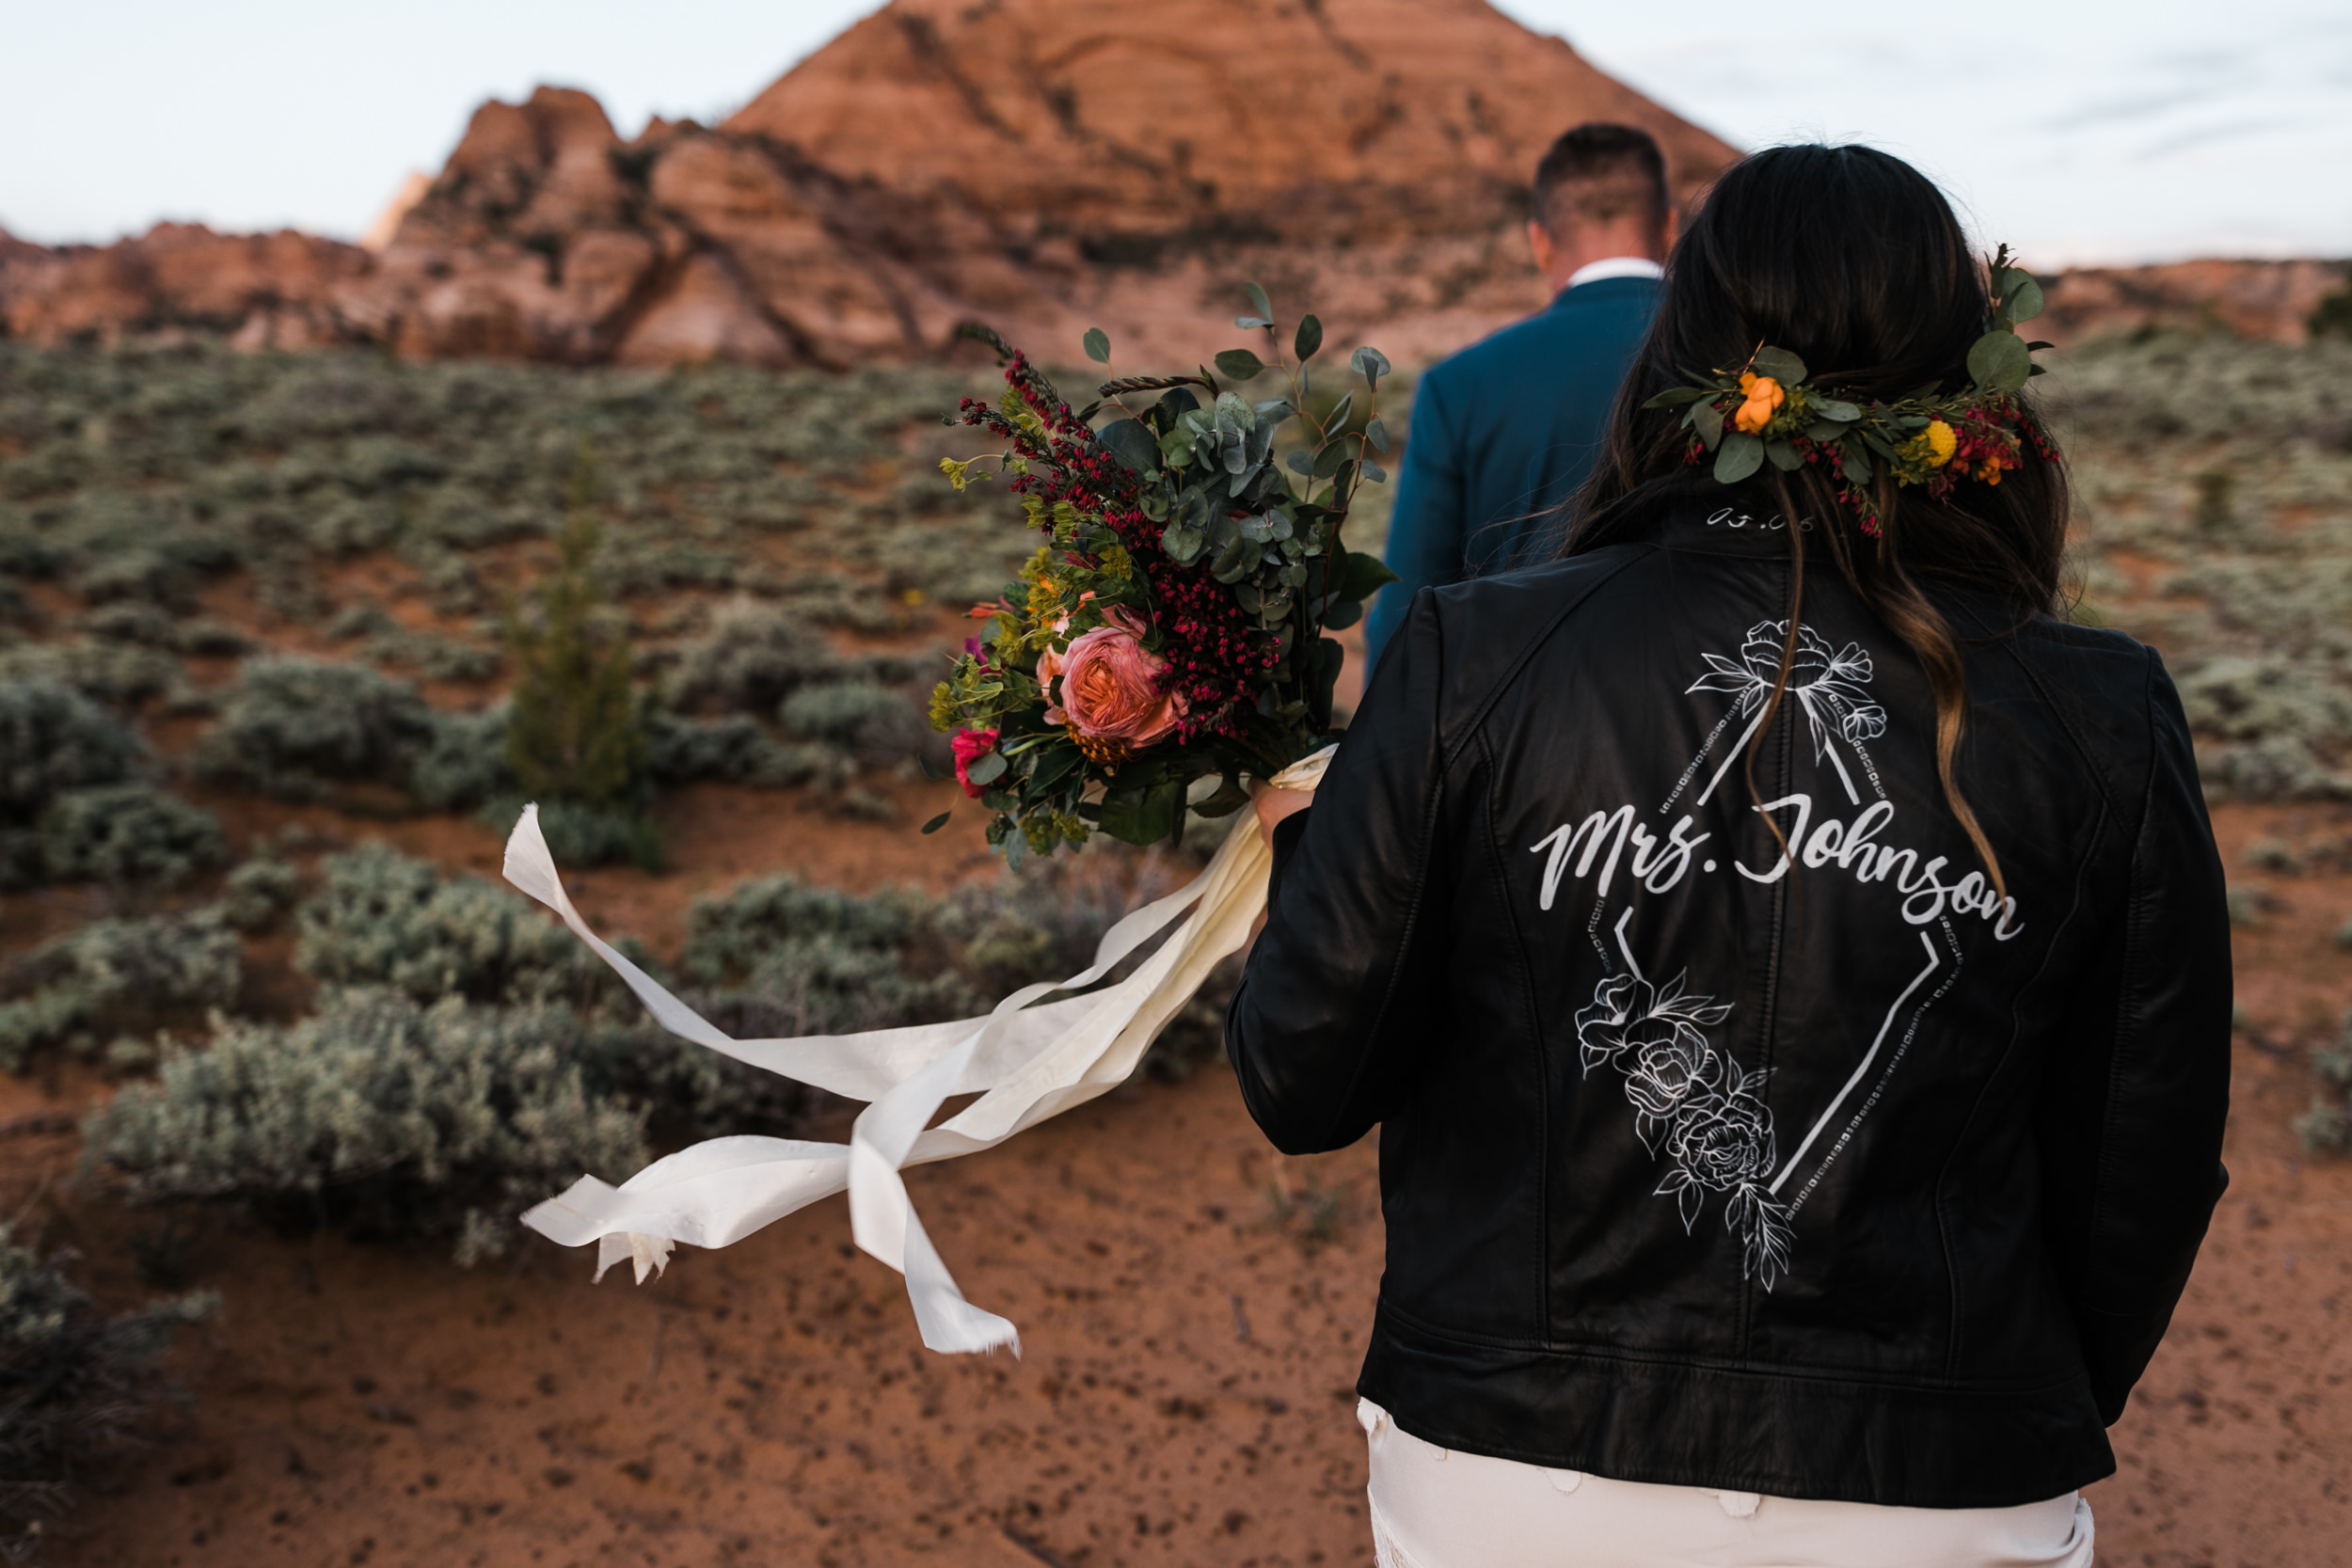 Custom leather bridal jacket | Zion National Park elopement and small wedding inspiration | The Hearnes Adventure Photography